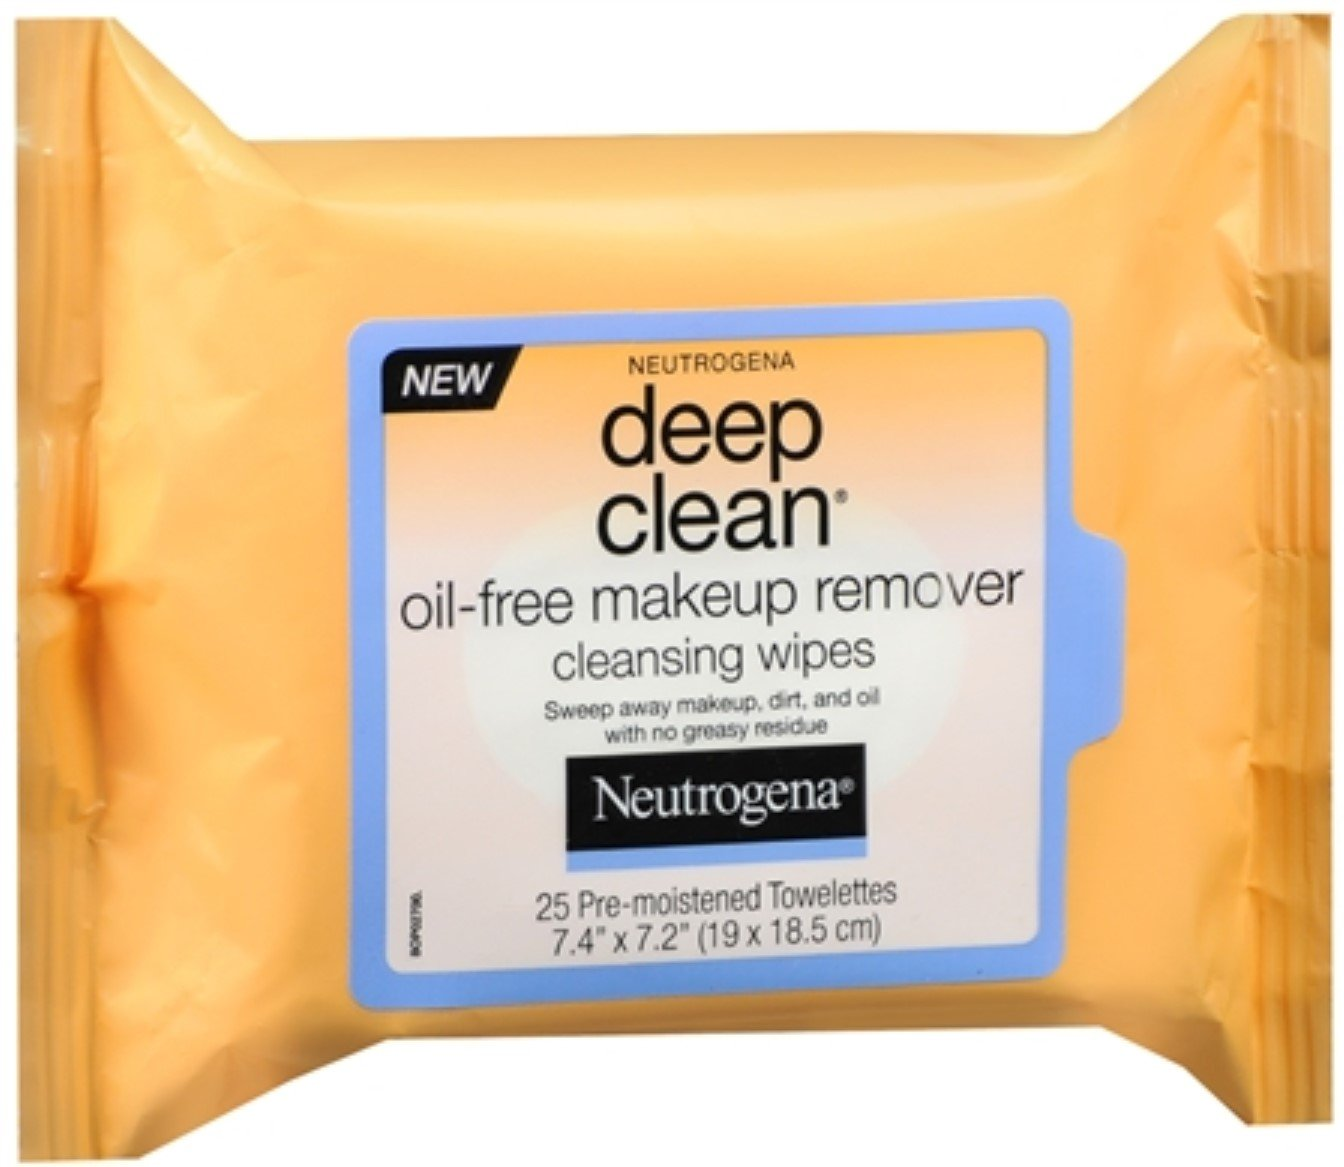 Neutrogena Deep Clean Oil-Free Makeup Remover Cleansing Wipes 25 Each (Pack of 4) by Neutrogena